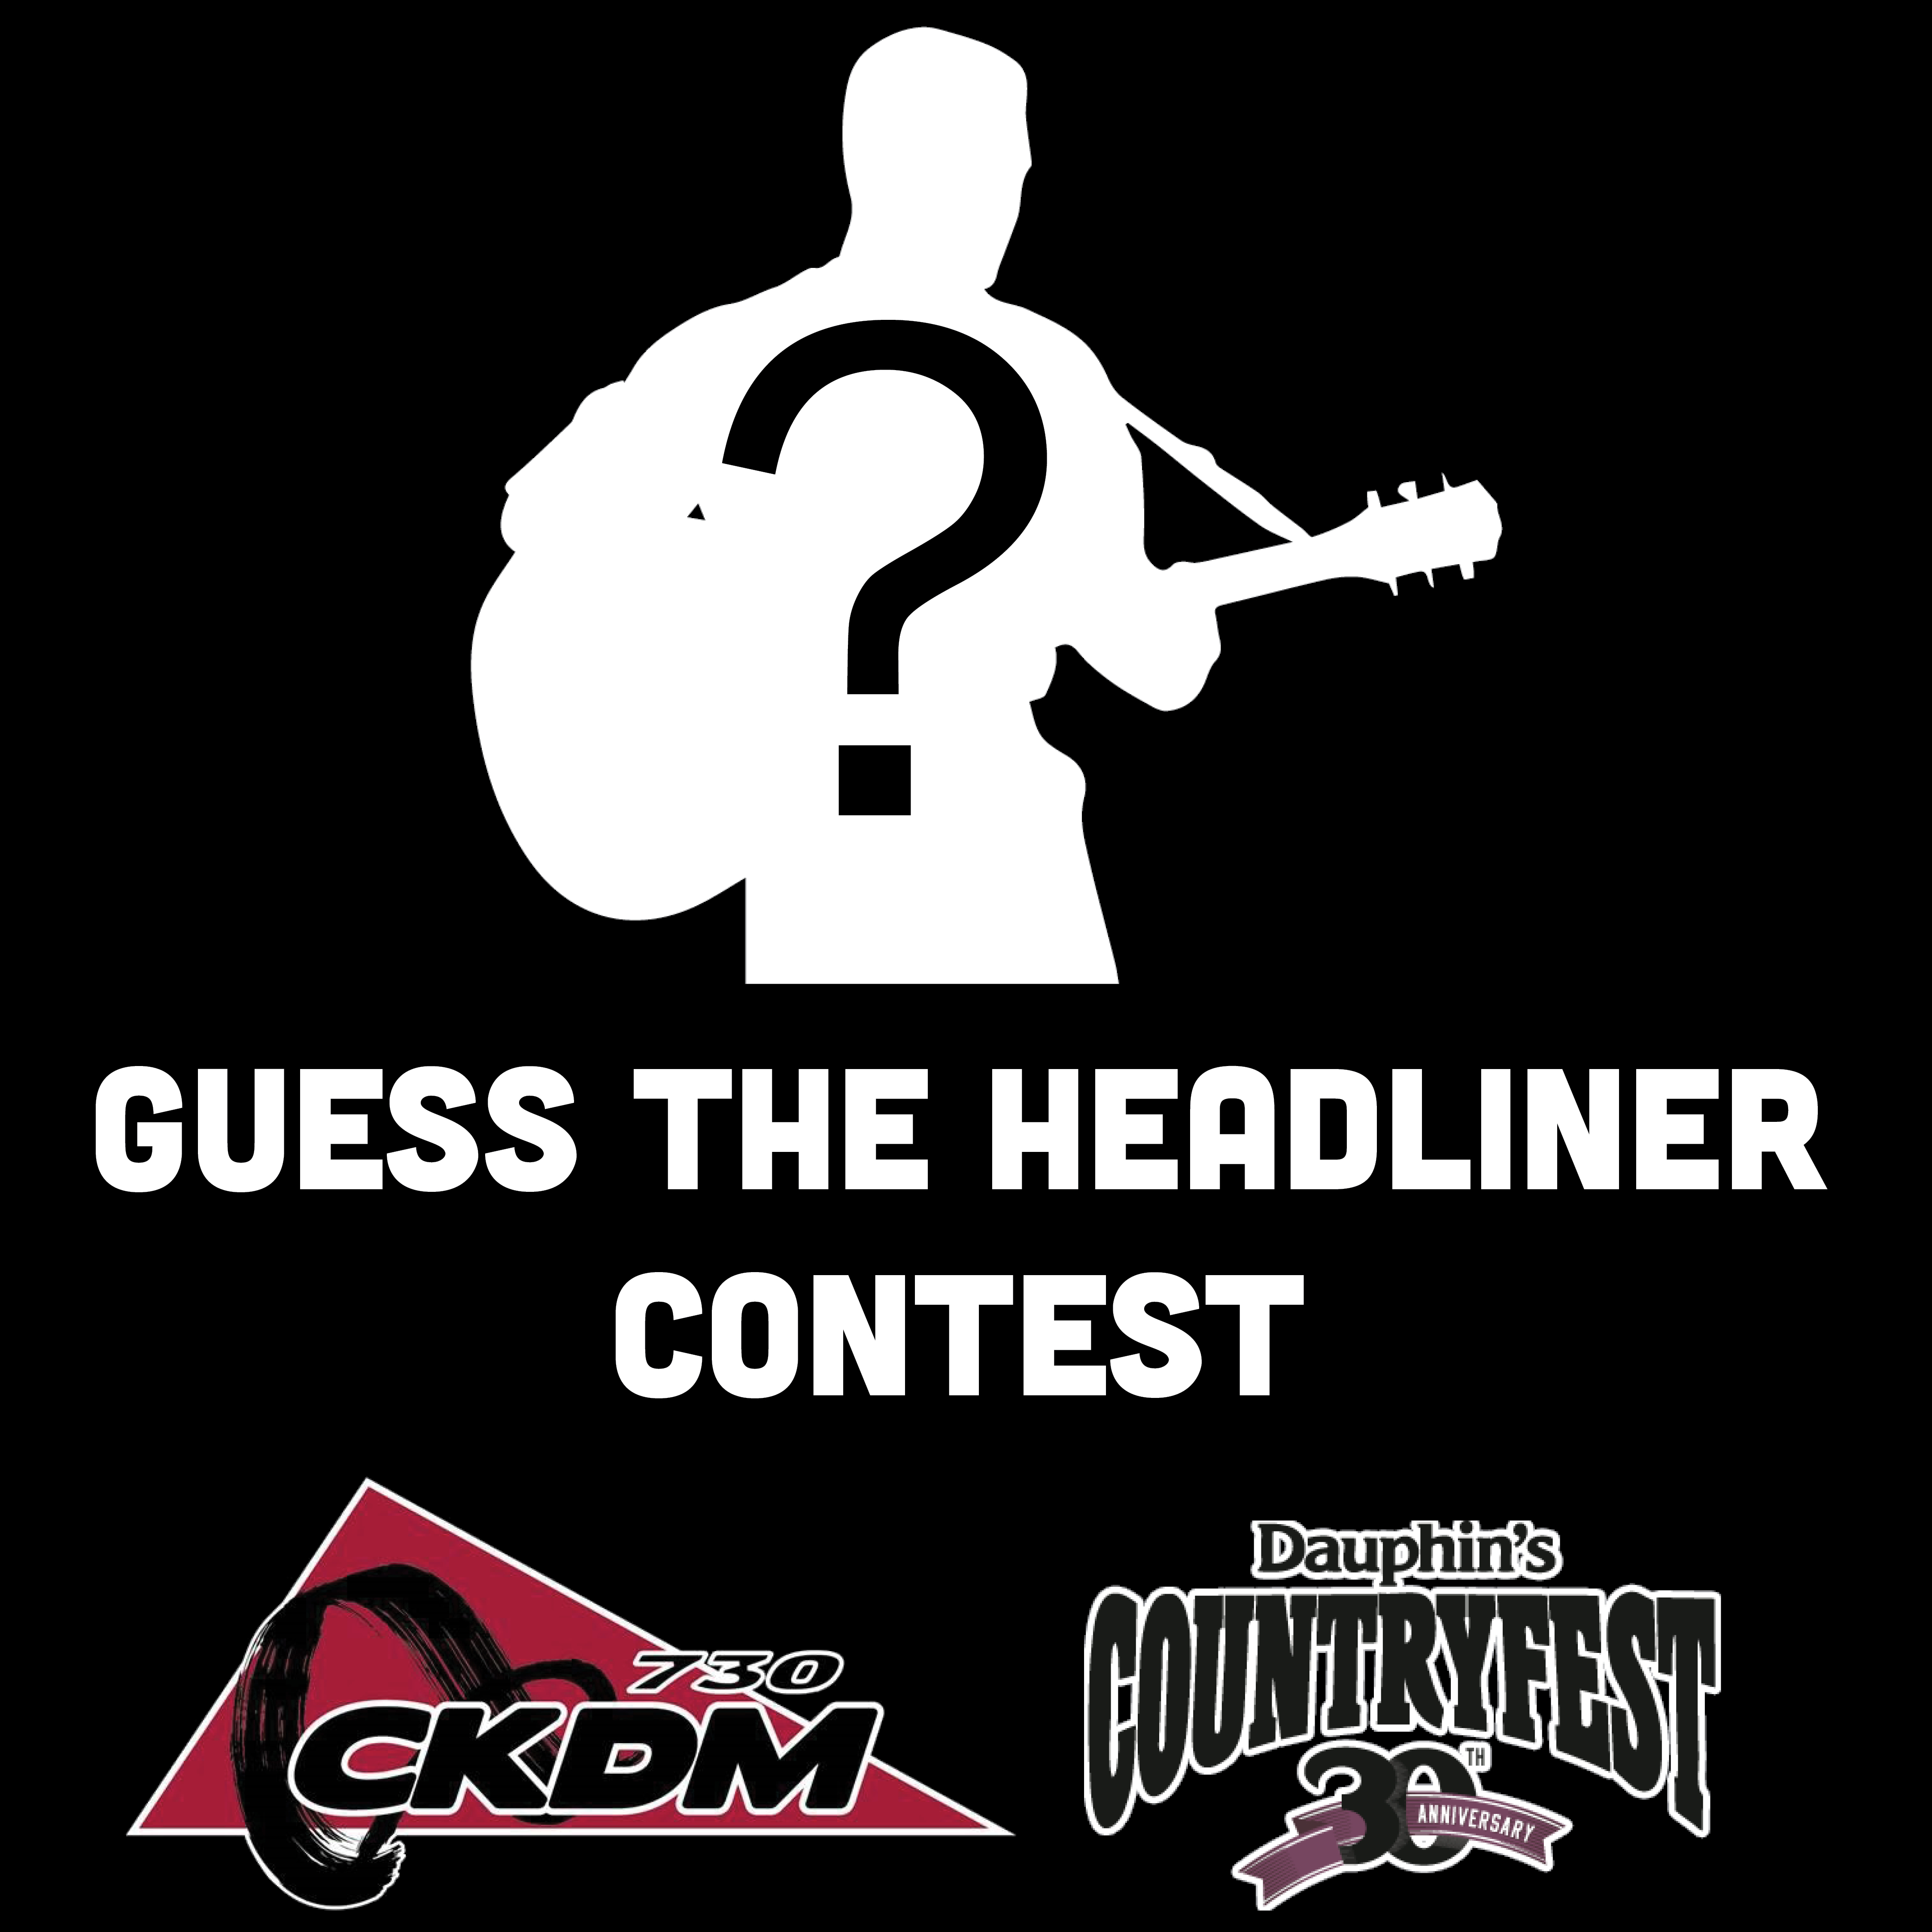 GuessTheHeadliner Contest DauphinsCountryfest 730CKDM 2018Sept14th 16th PromoLogo001